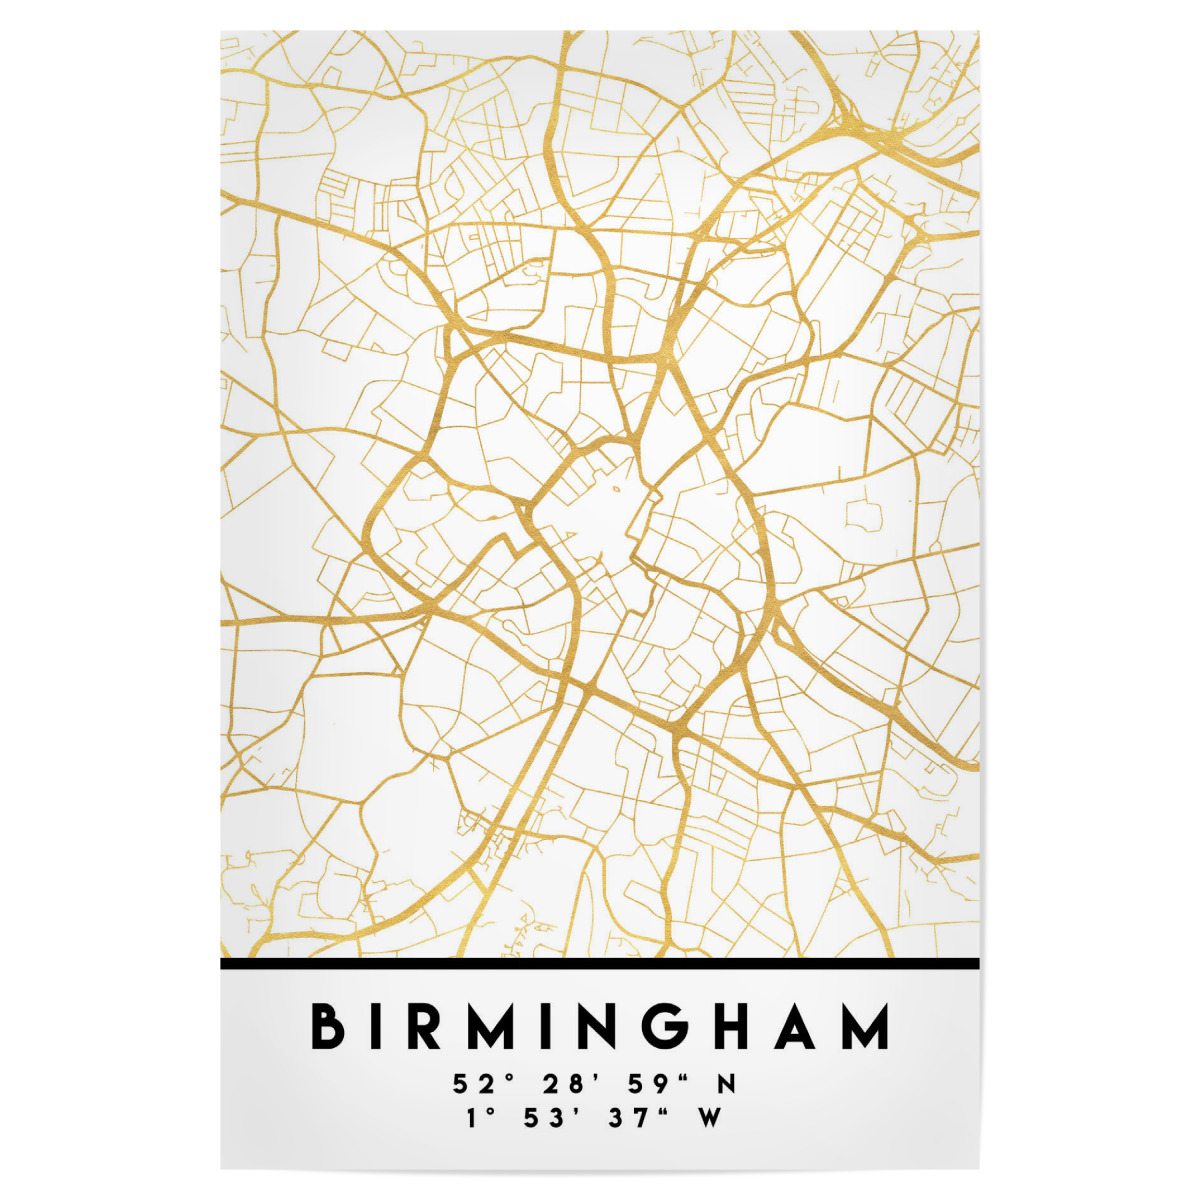 Map Of Birmingham England.Purchase The Birmingham England Street Map Art As A Poster At Artboxone